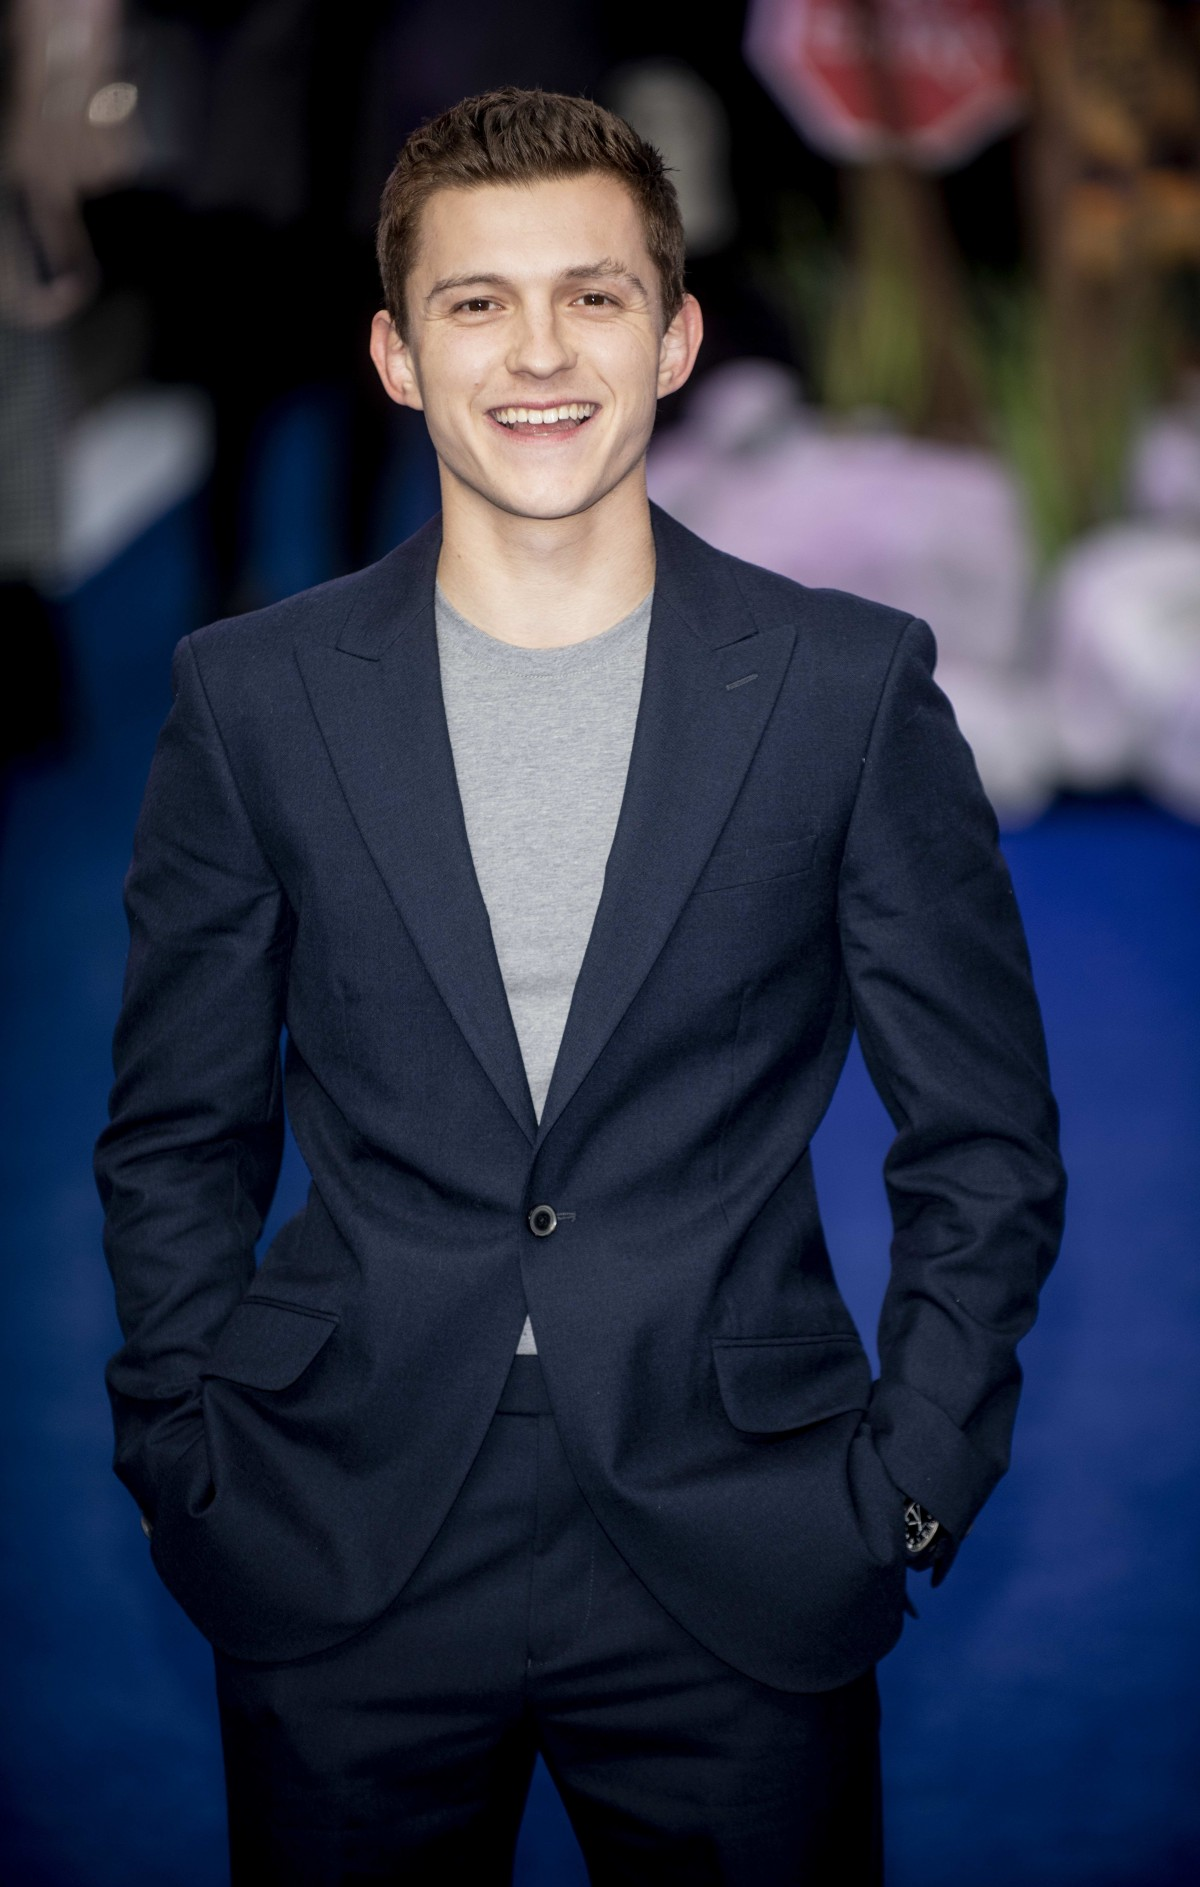 Tom Holland at the 'Onward' film premiere, Curzon Mayfair, London, UK - 23 Feb 2020 photo by Brian...